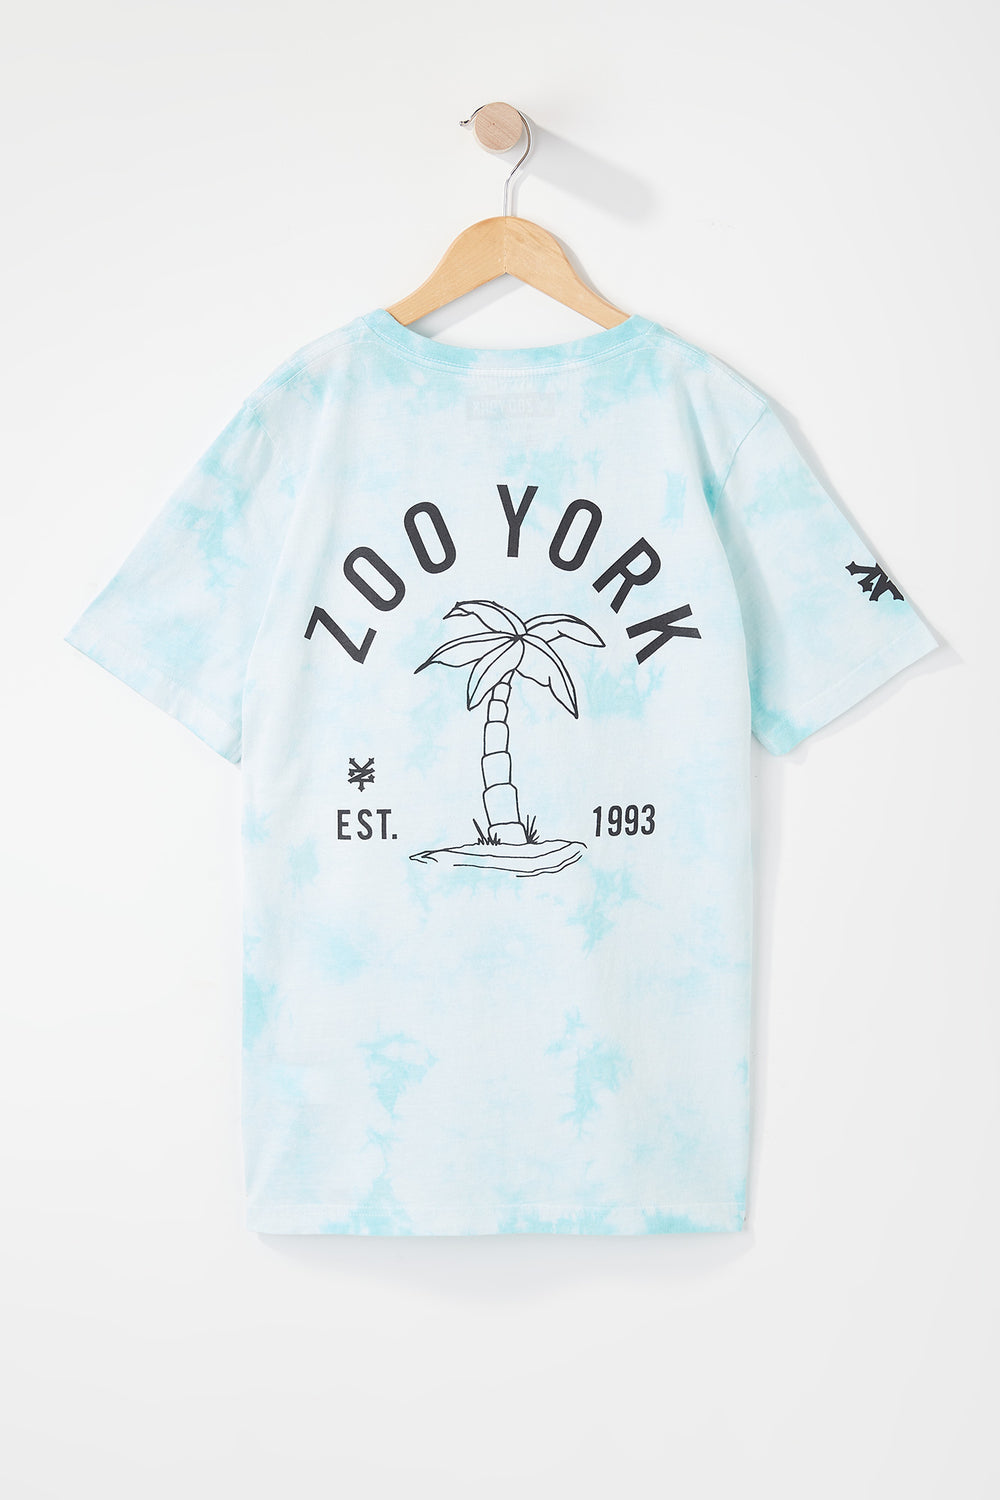 Zoo York Boys Palm Tree Tie-Dye T-Shirt Teal